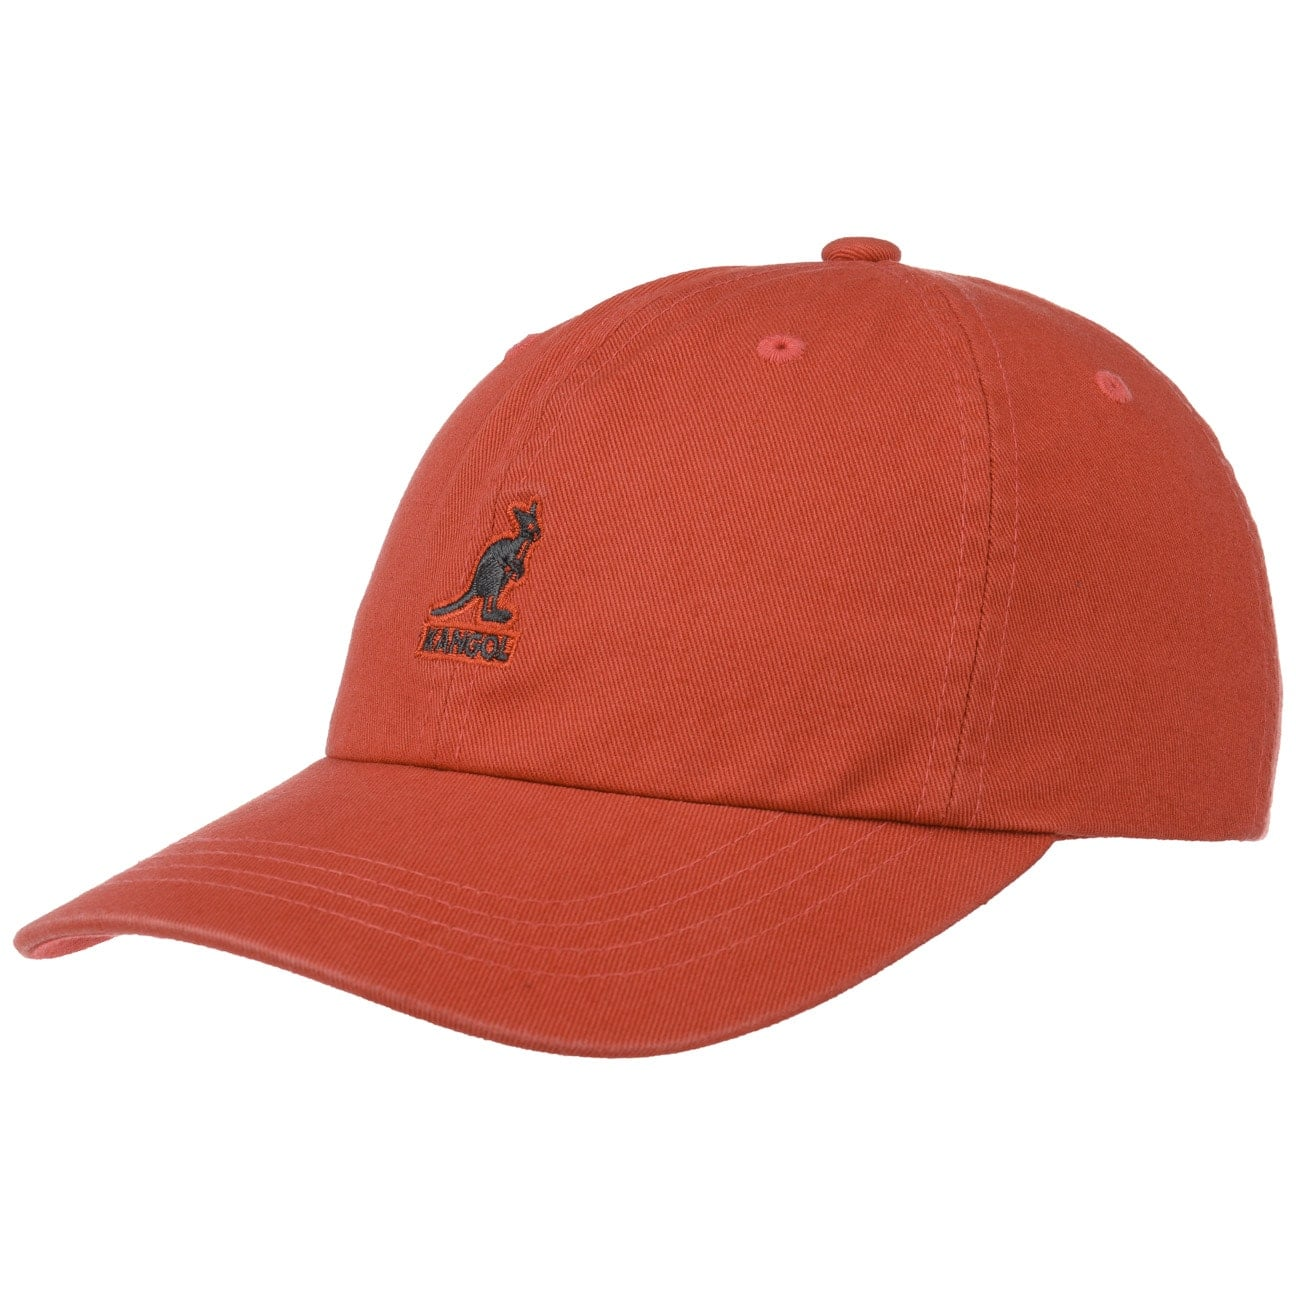 Gorra Washed Dad Hat by Kangol  gorra de baseball